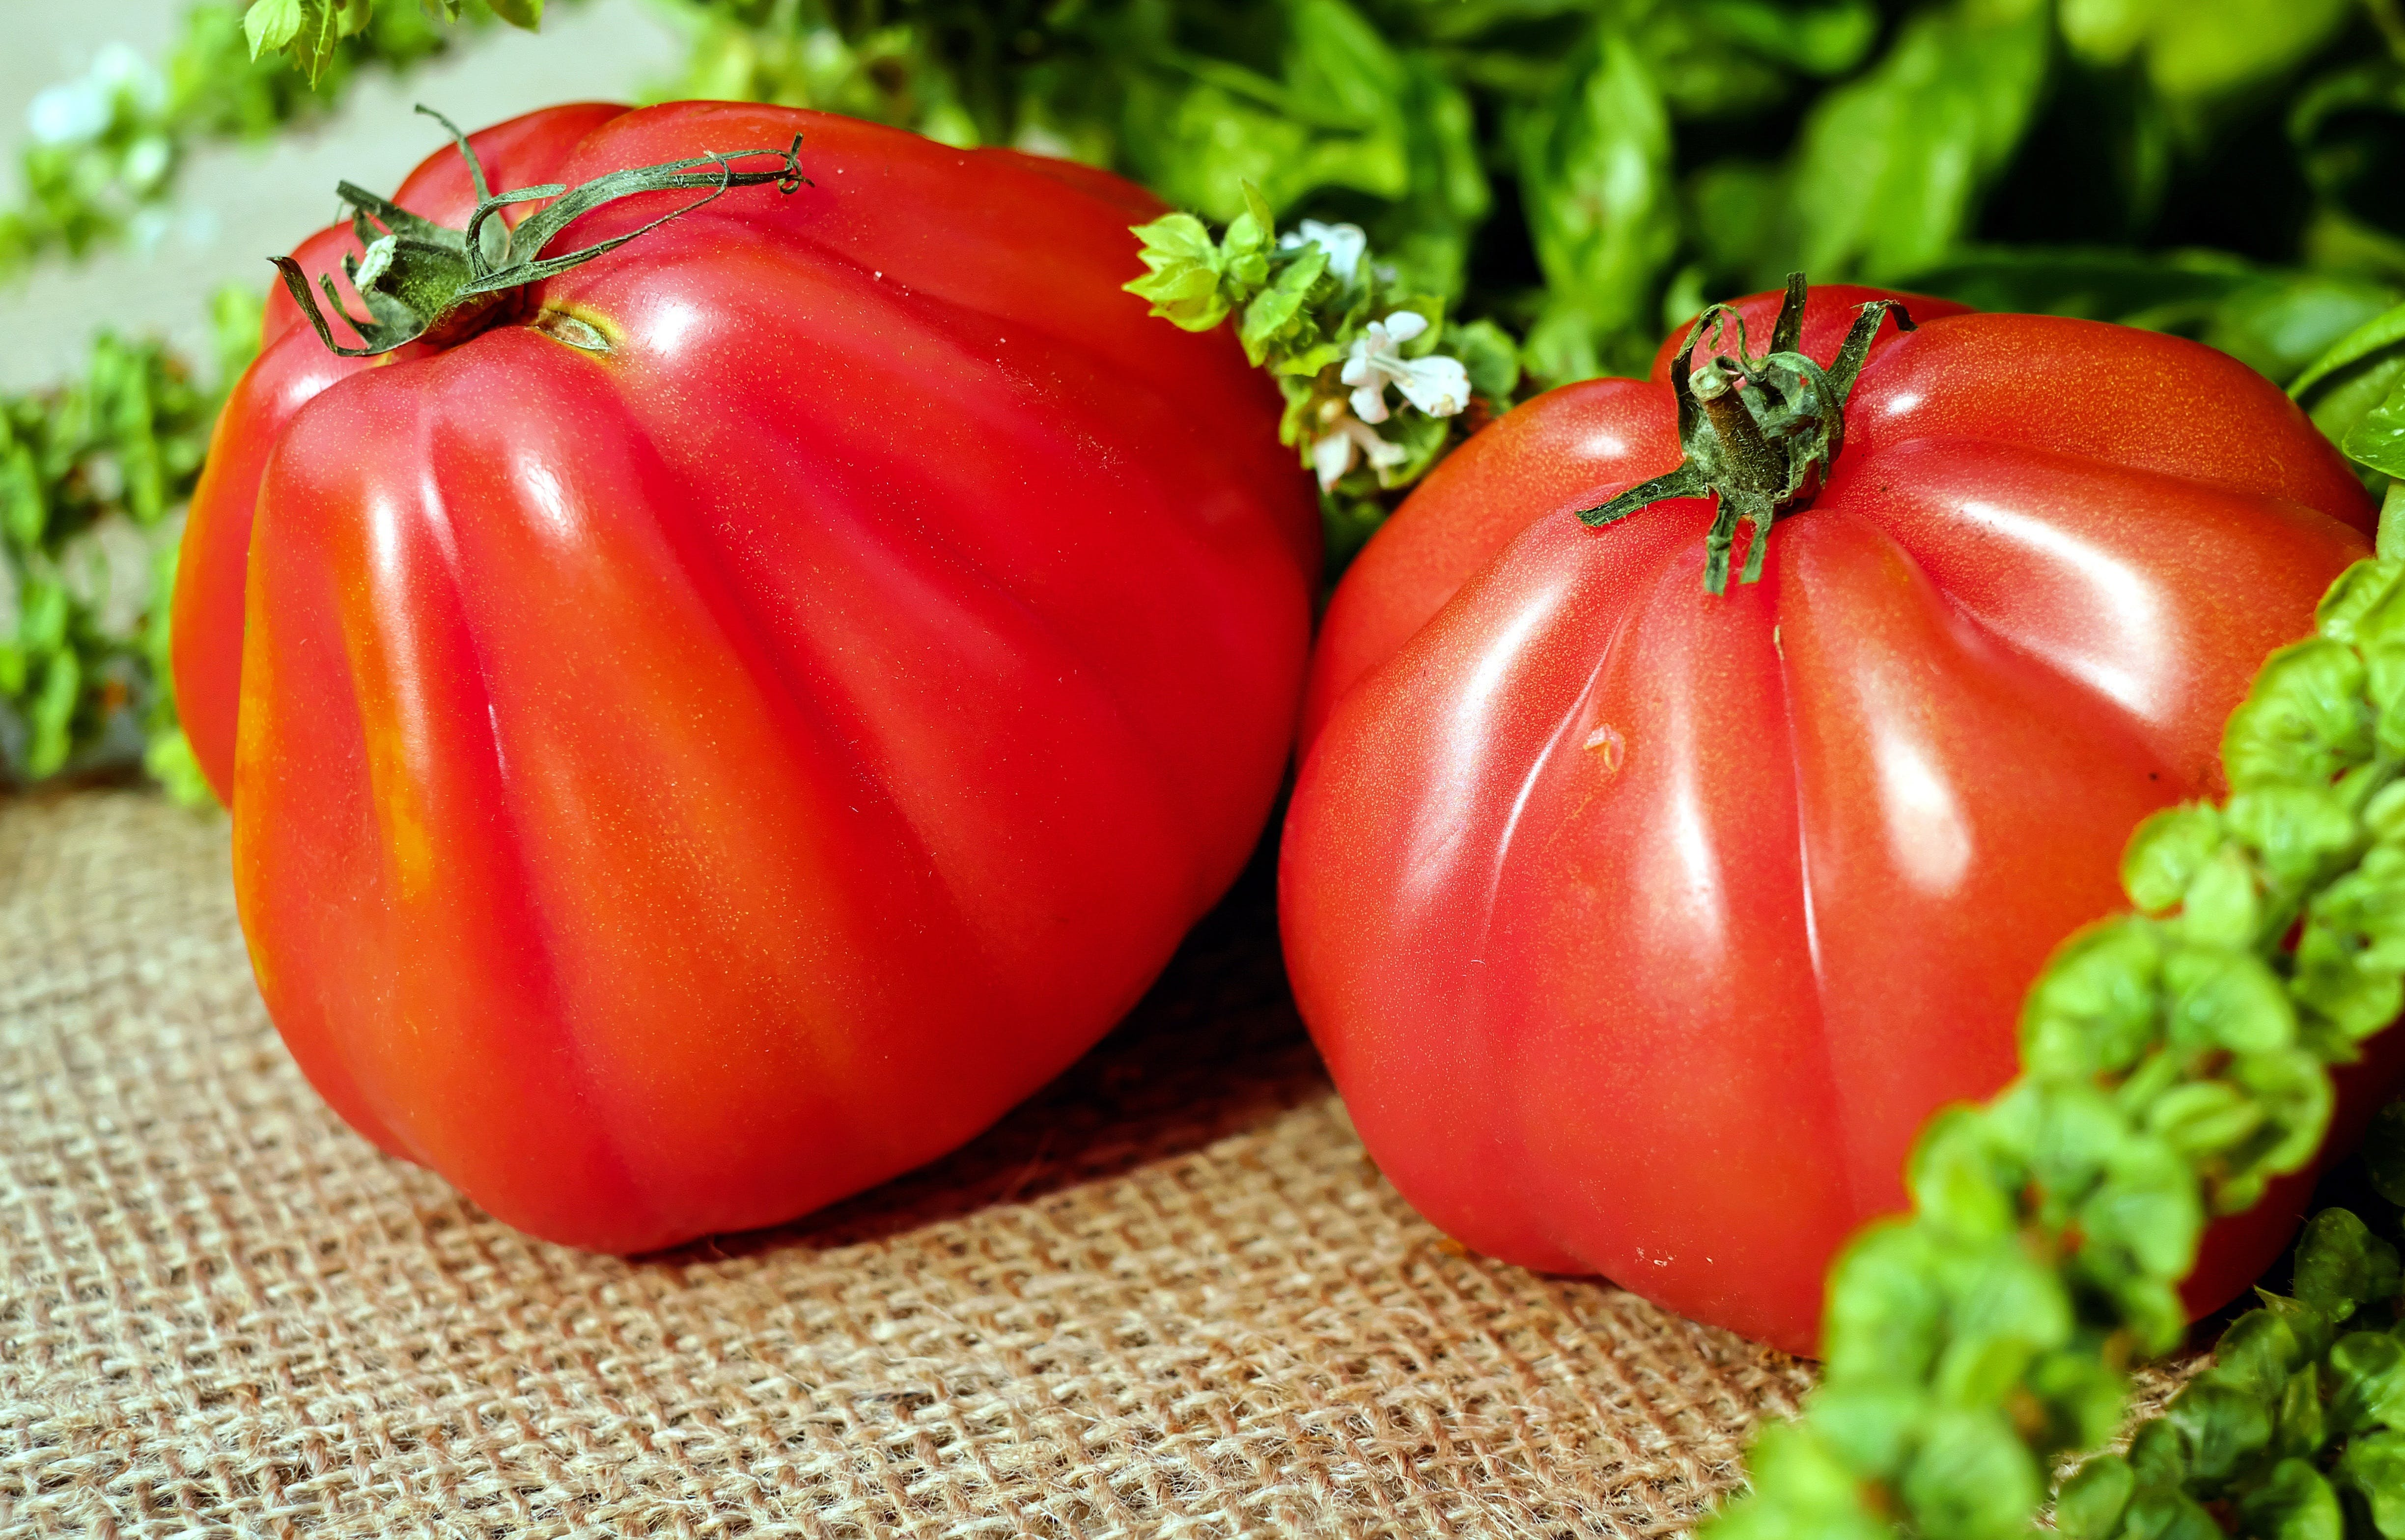 Two Red Orange Tomato Near Green Leaves